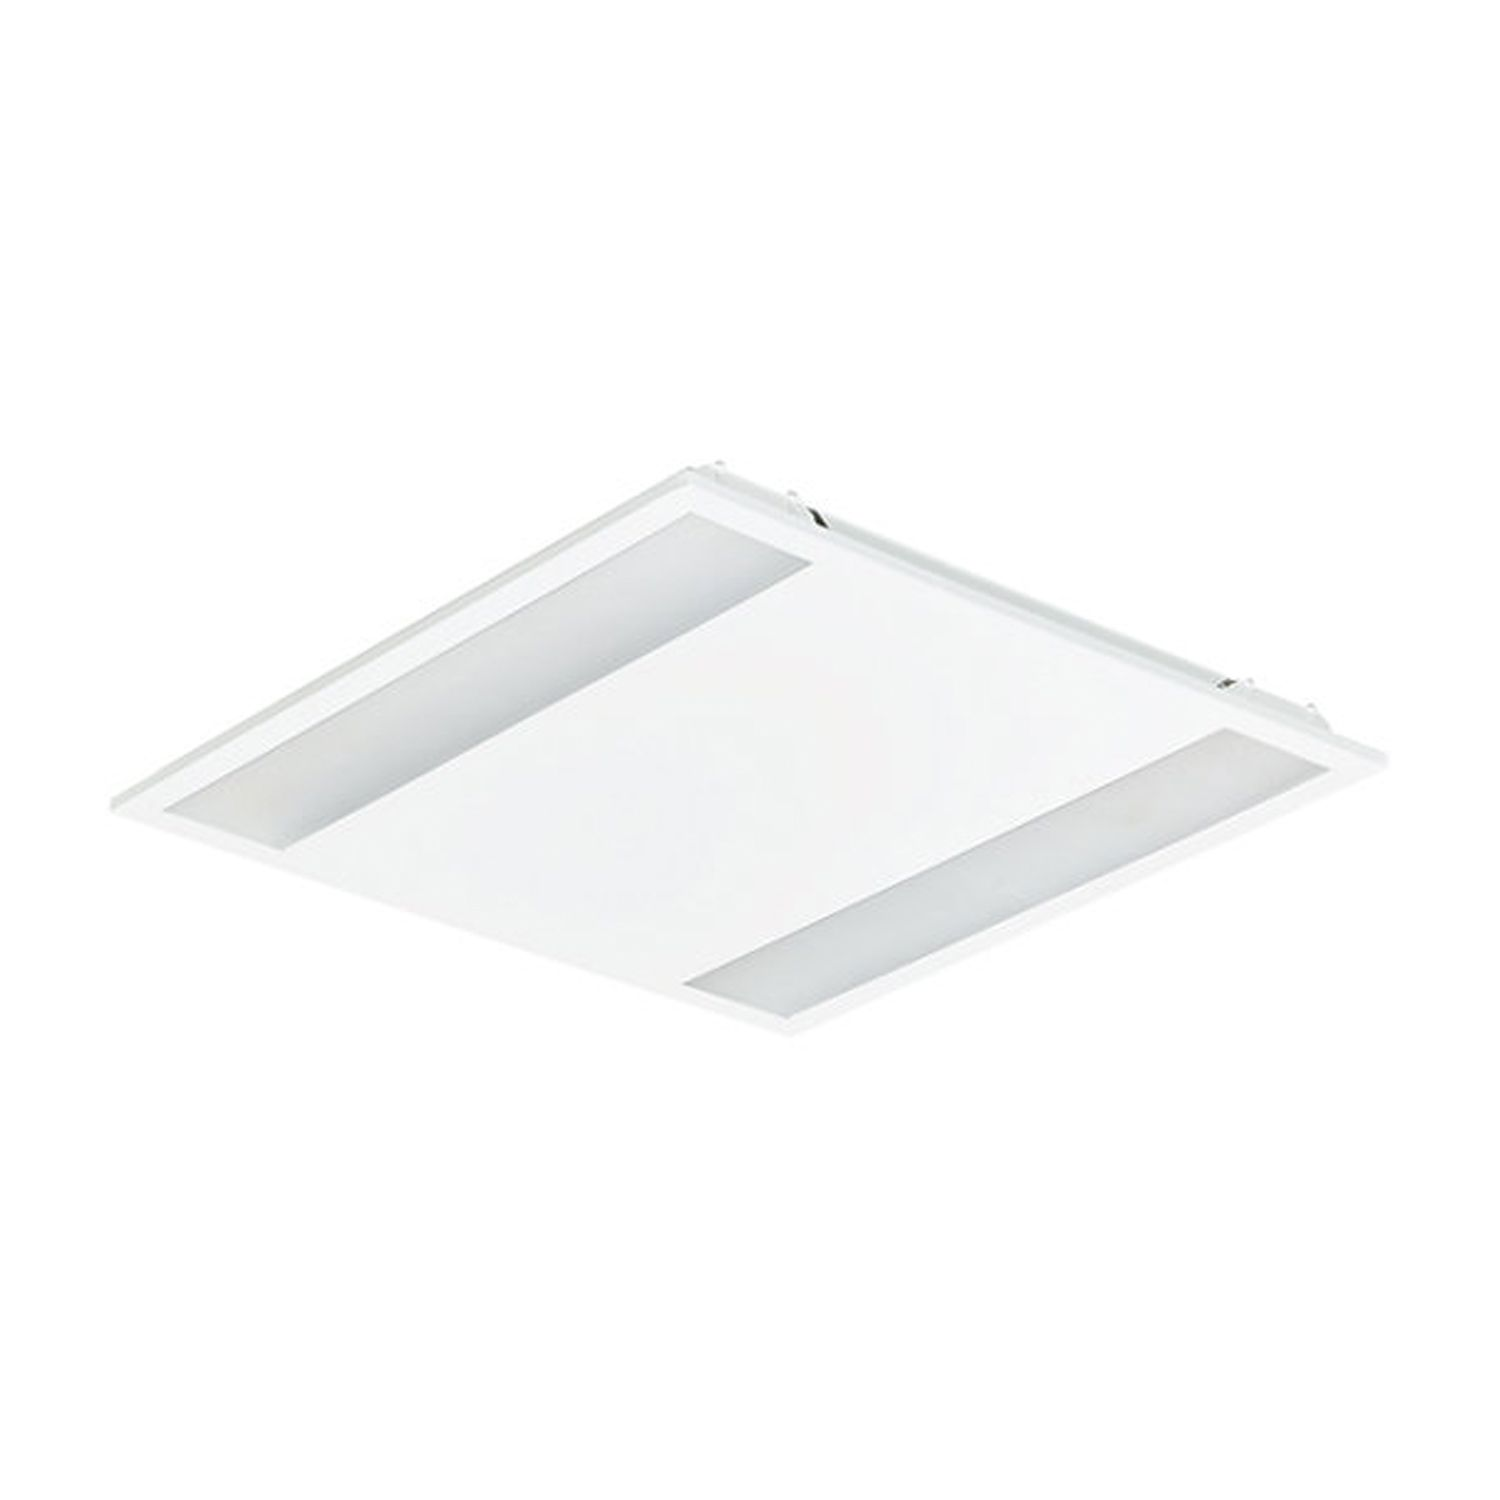 Philips CoreLine RC134B LED Panel 60x60cm 4000K 3700lm PSU OC | Ersatz für 4x18W